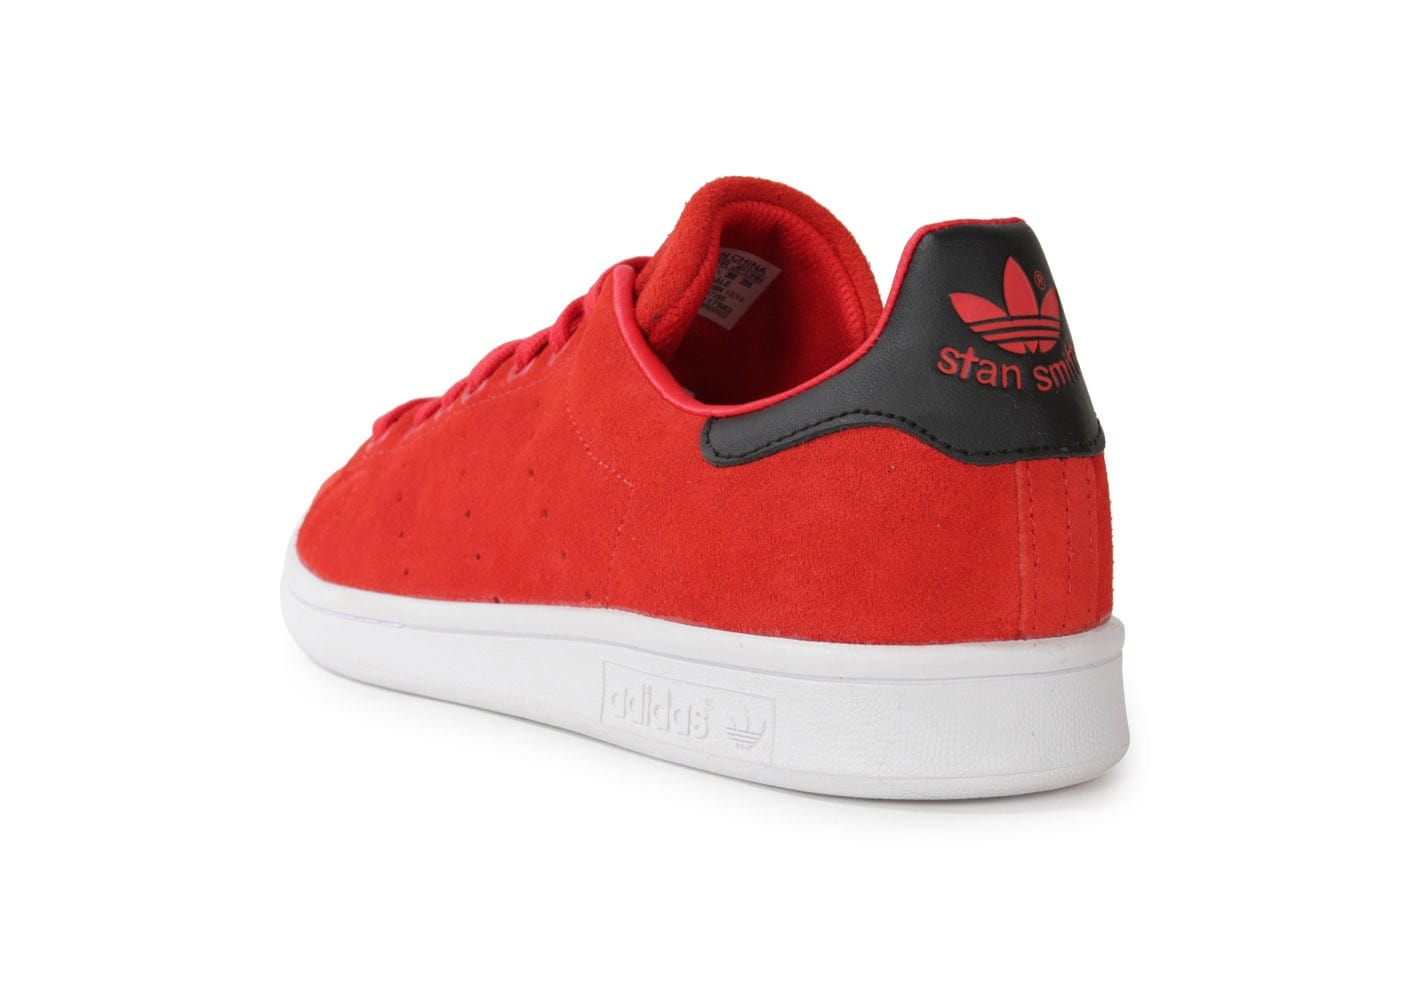 adidas stan smith suede rouge